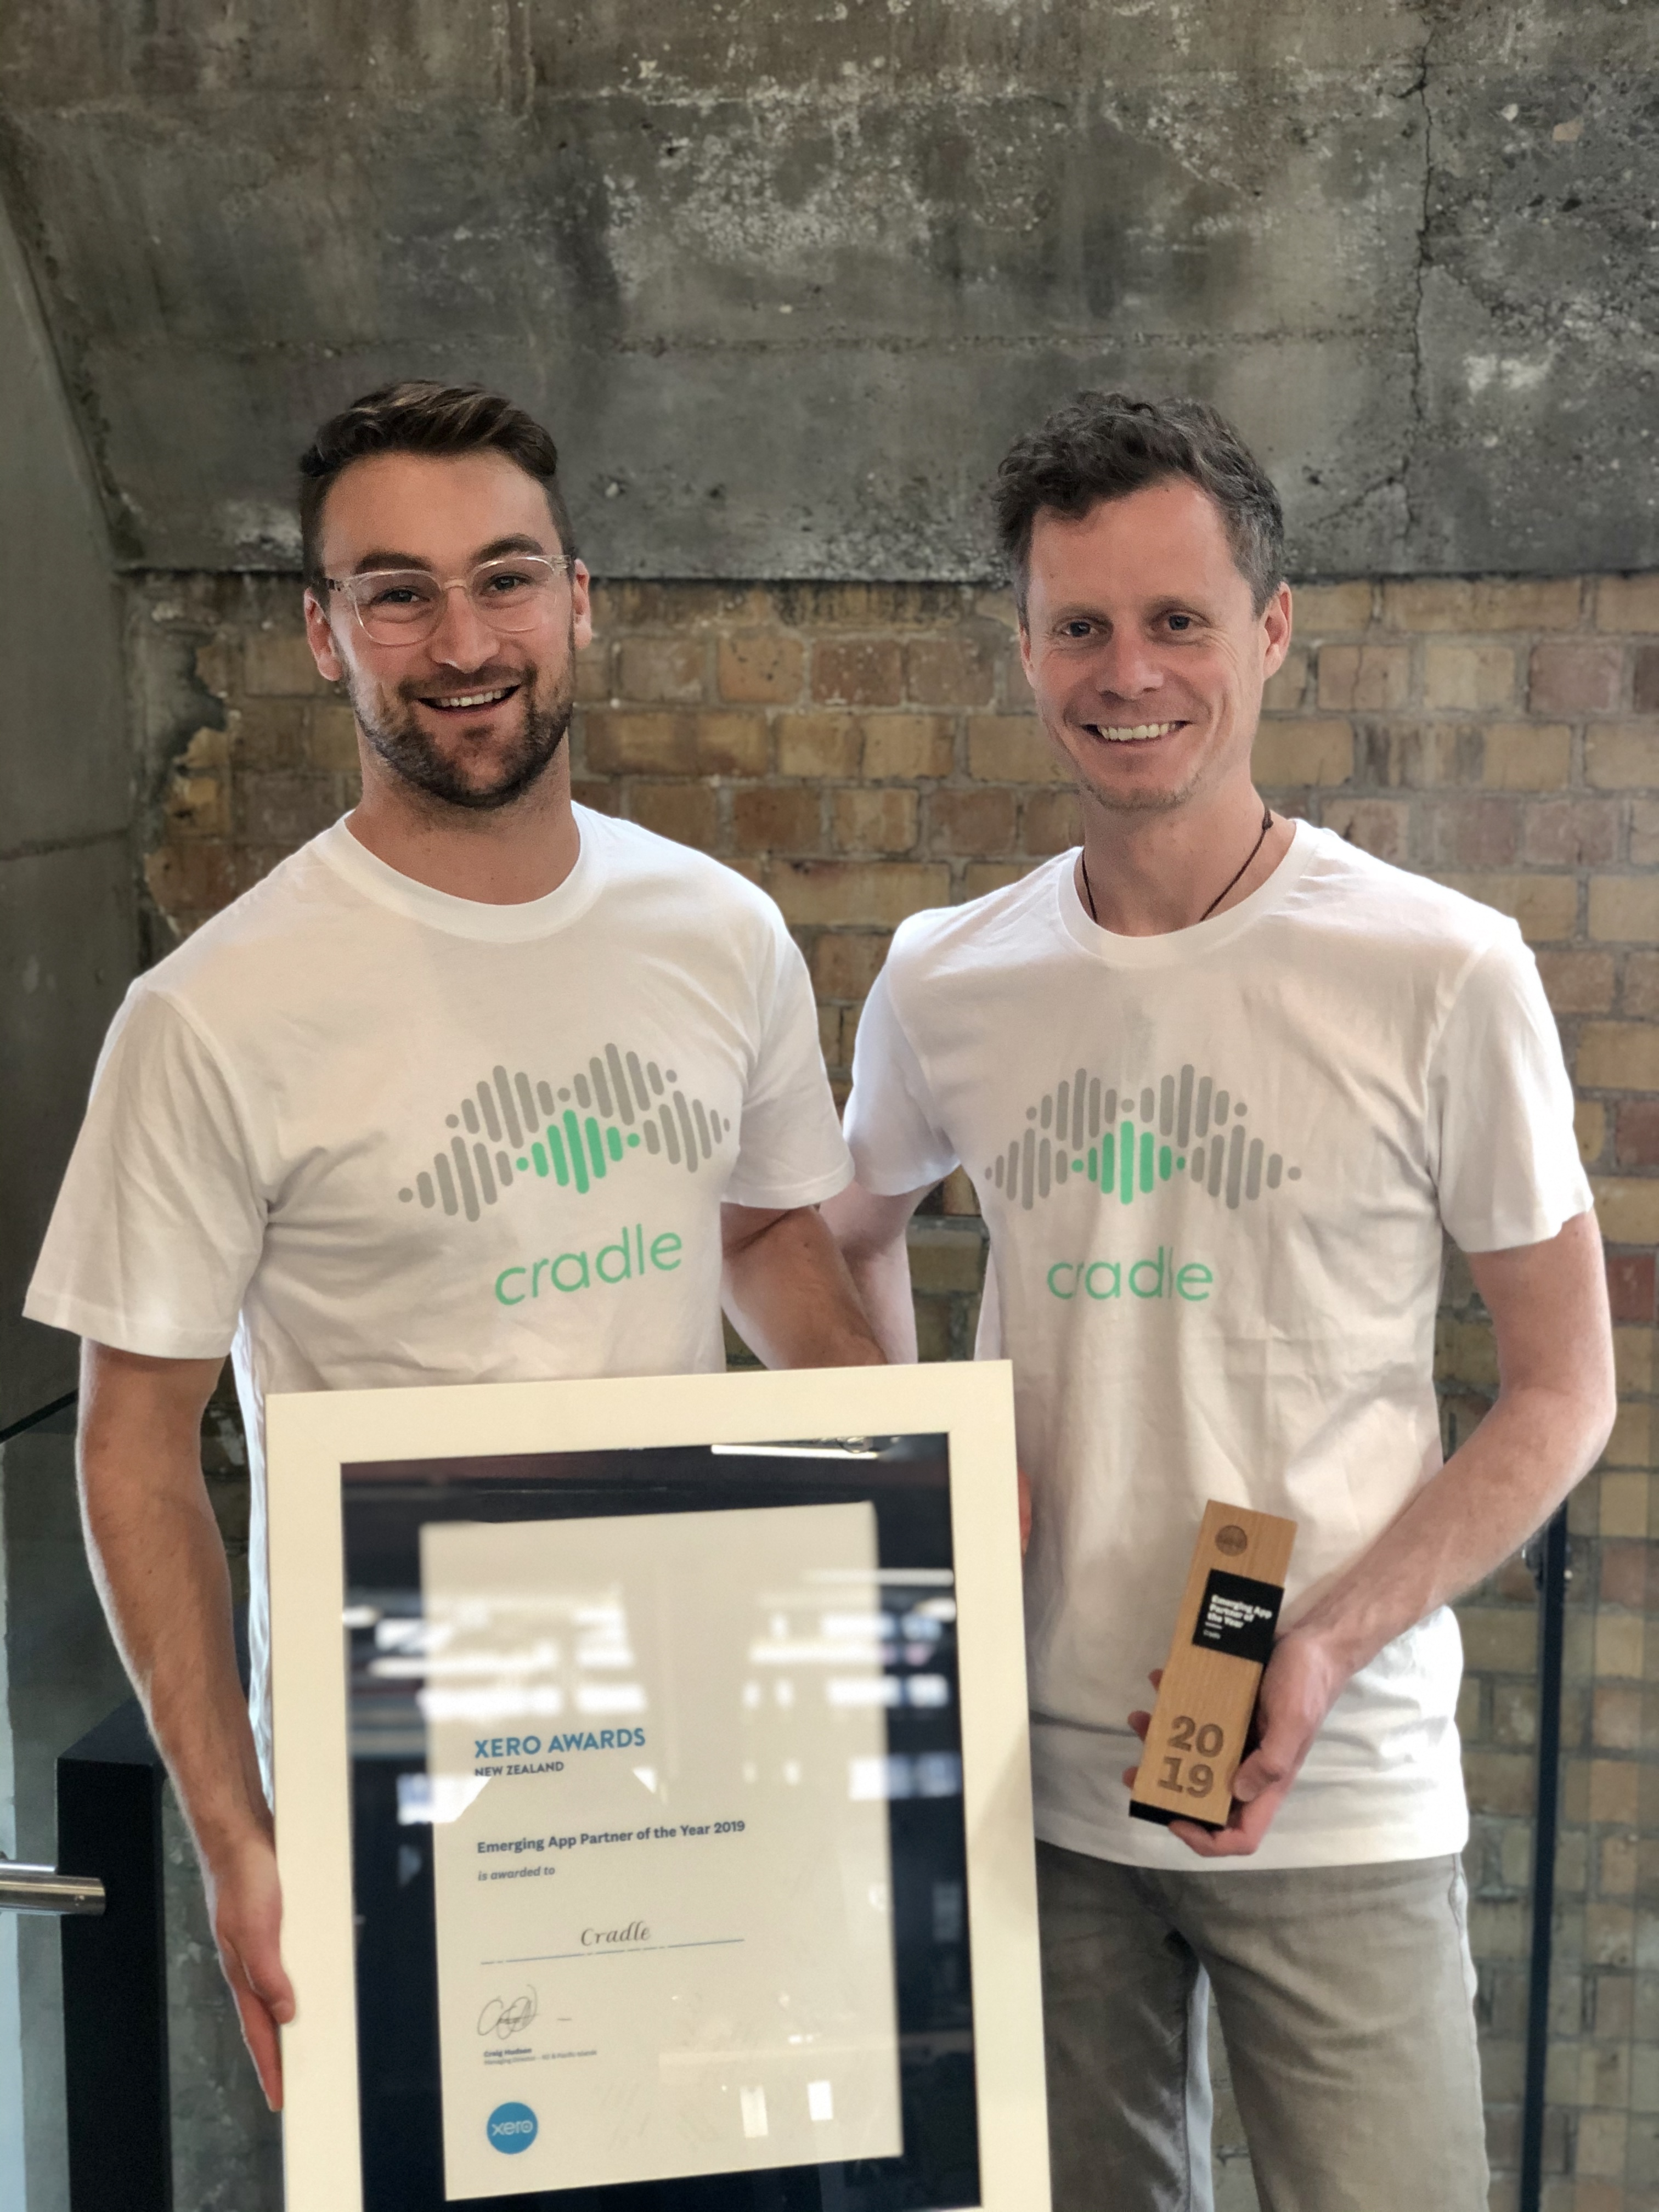 Max and James with the Xero Emerging App Award